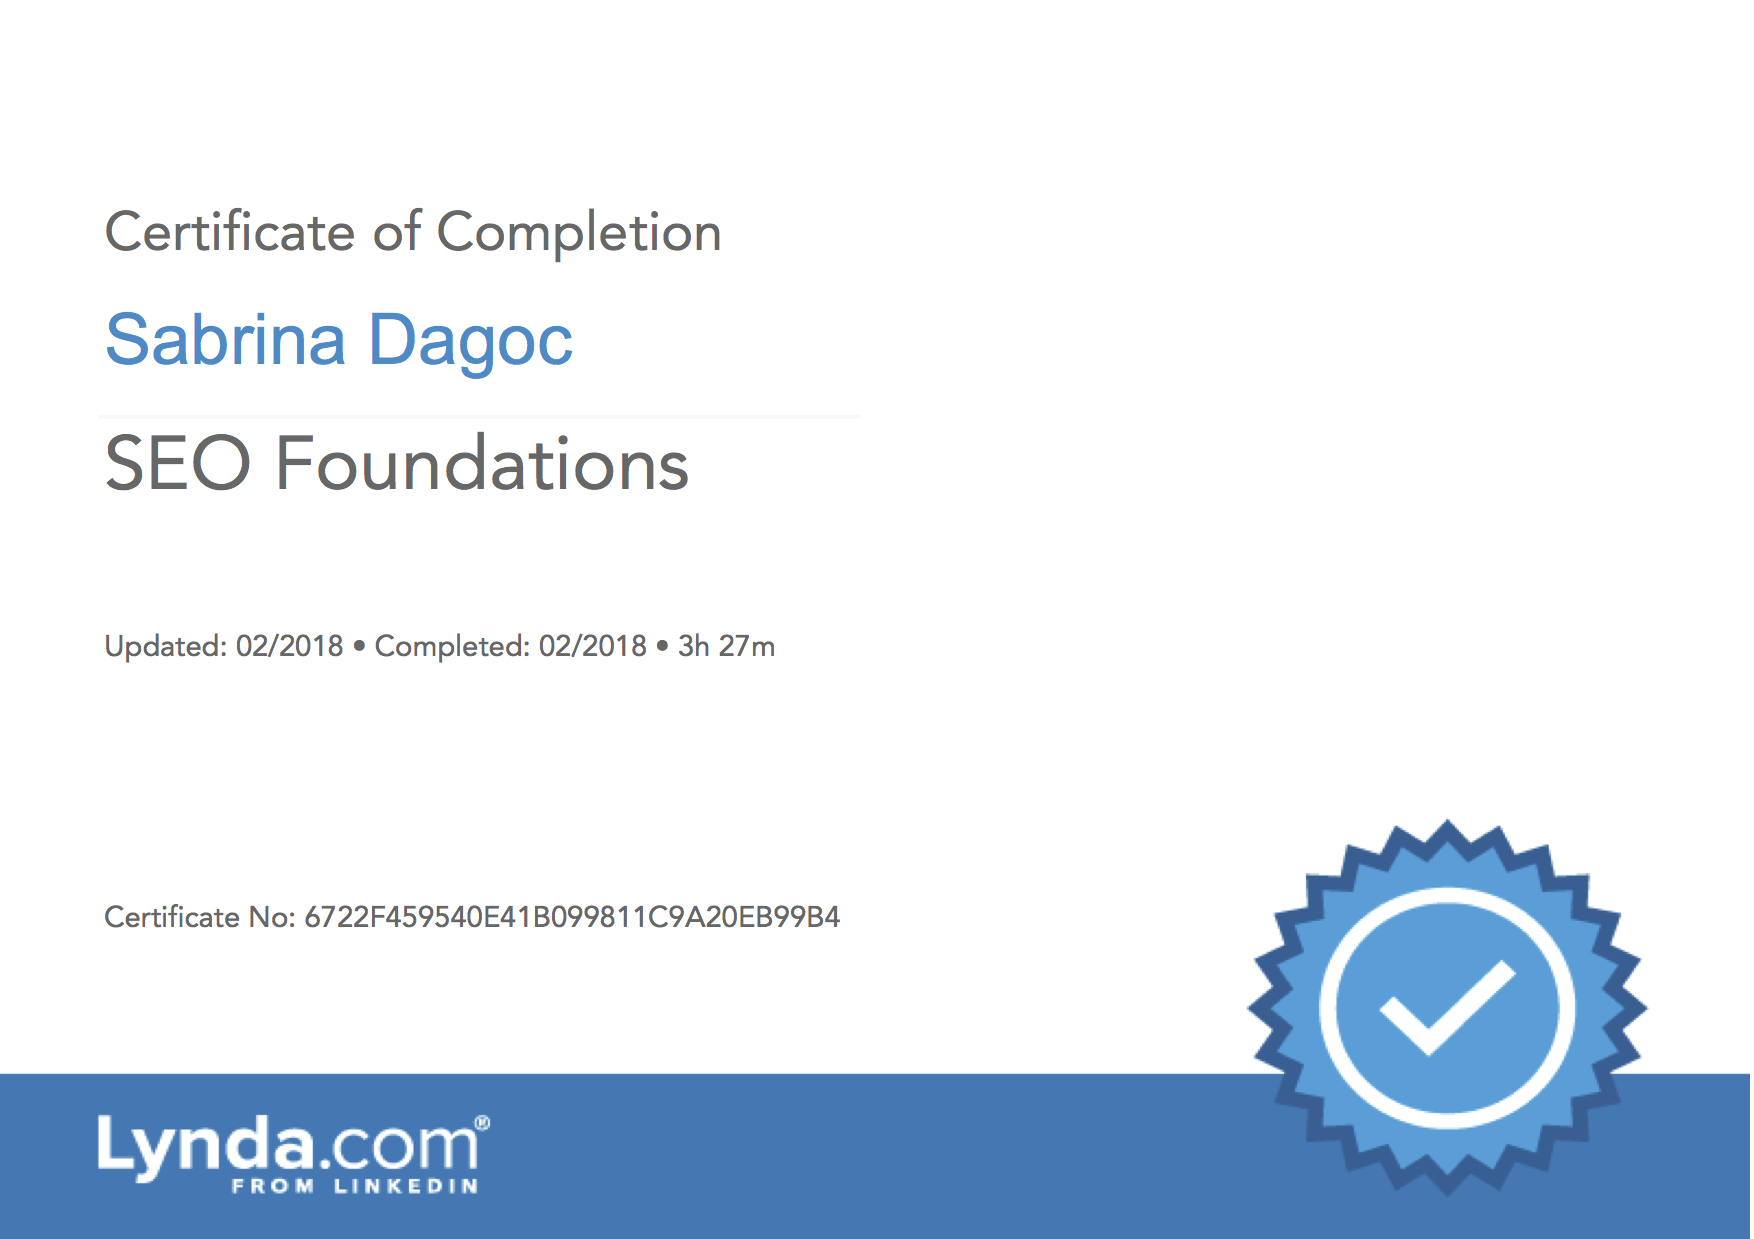 SEOFoundations_CertificateOfCompletion (2).png